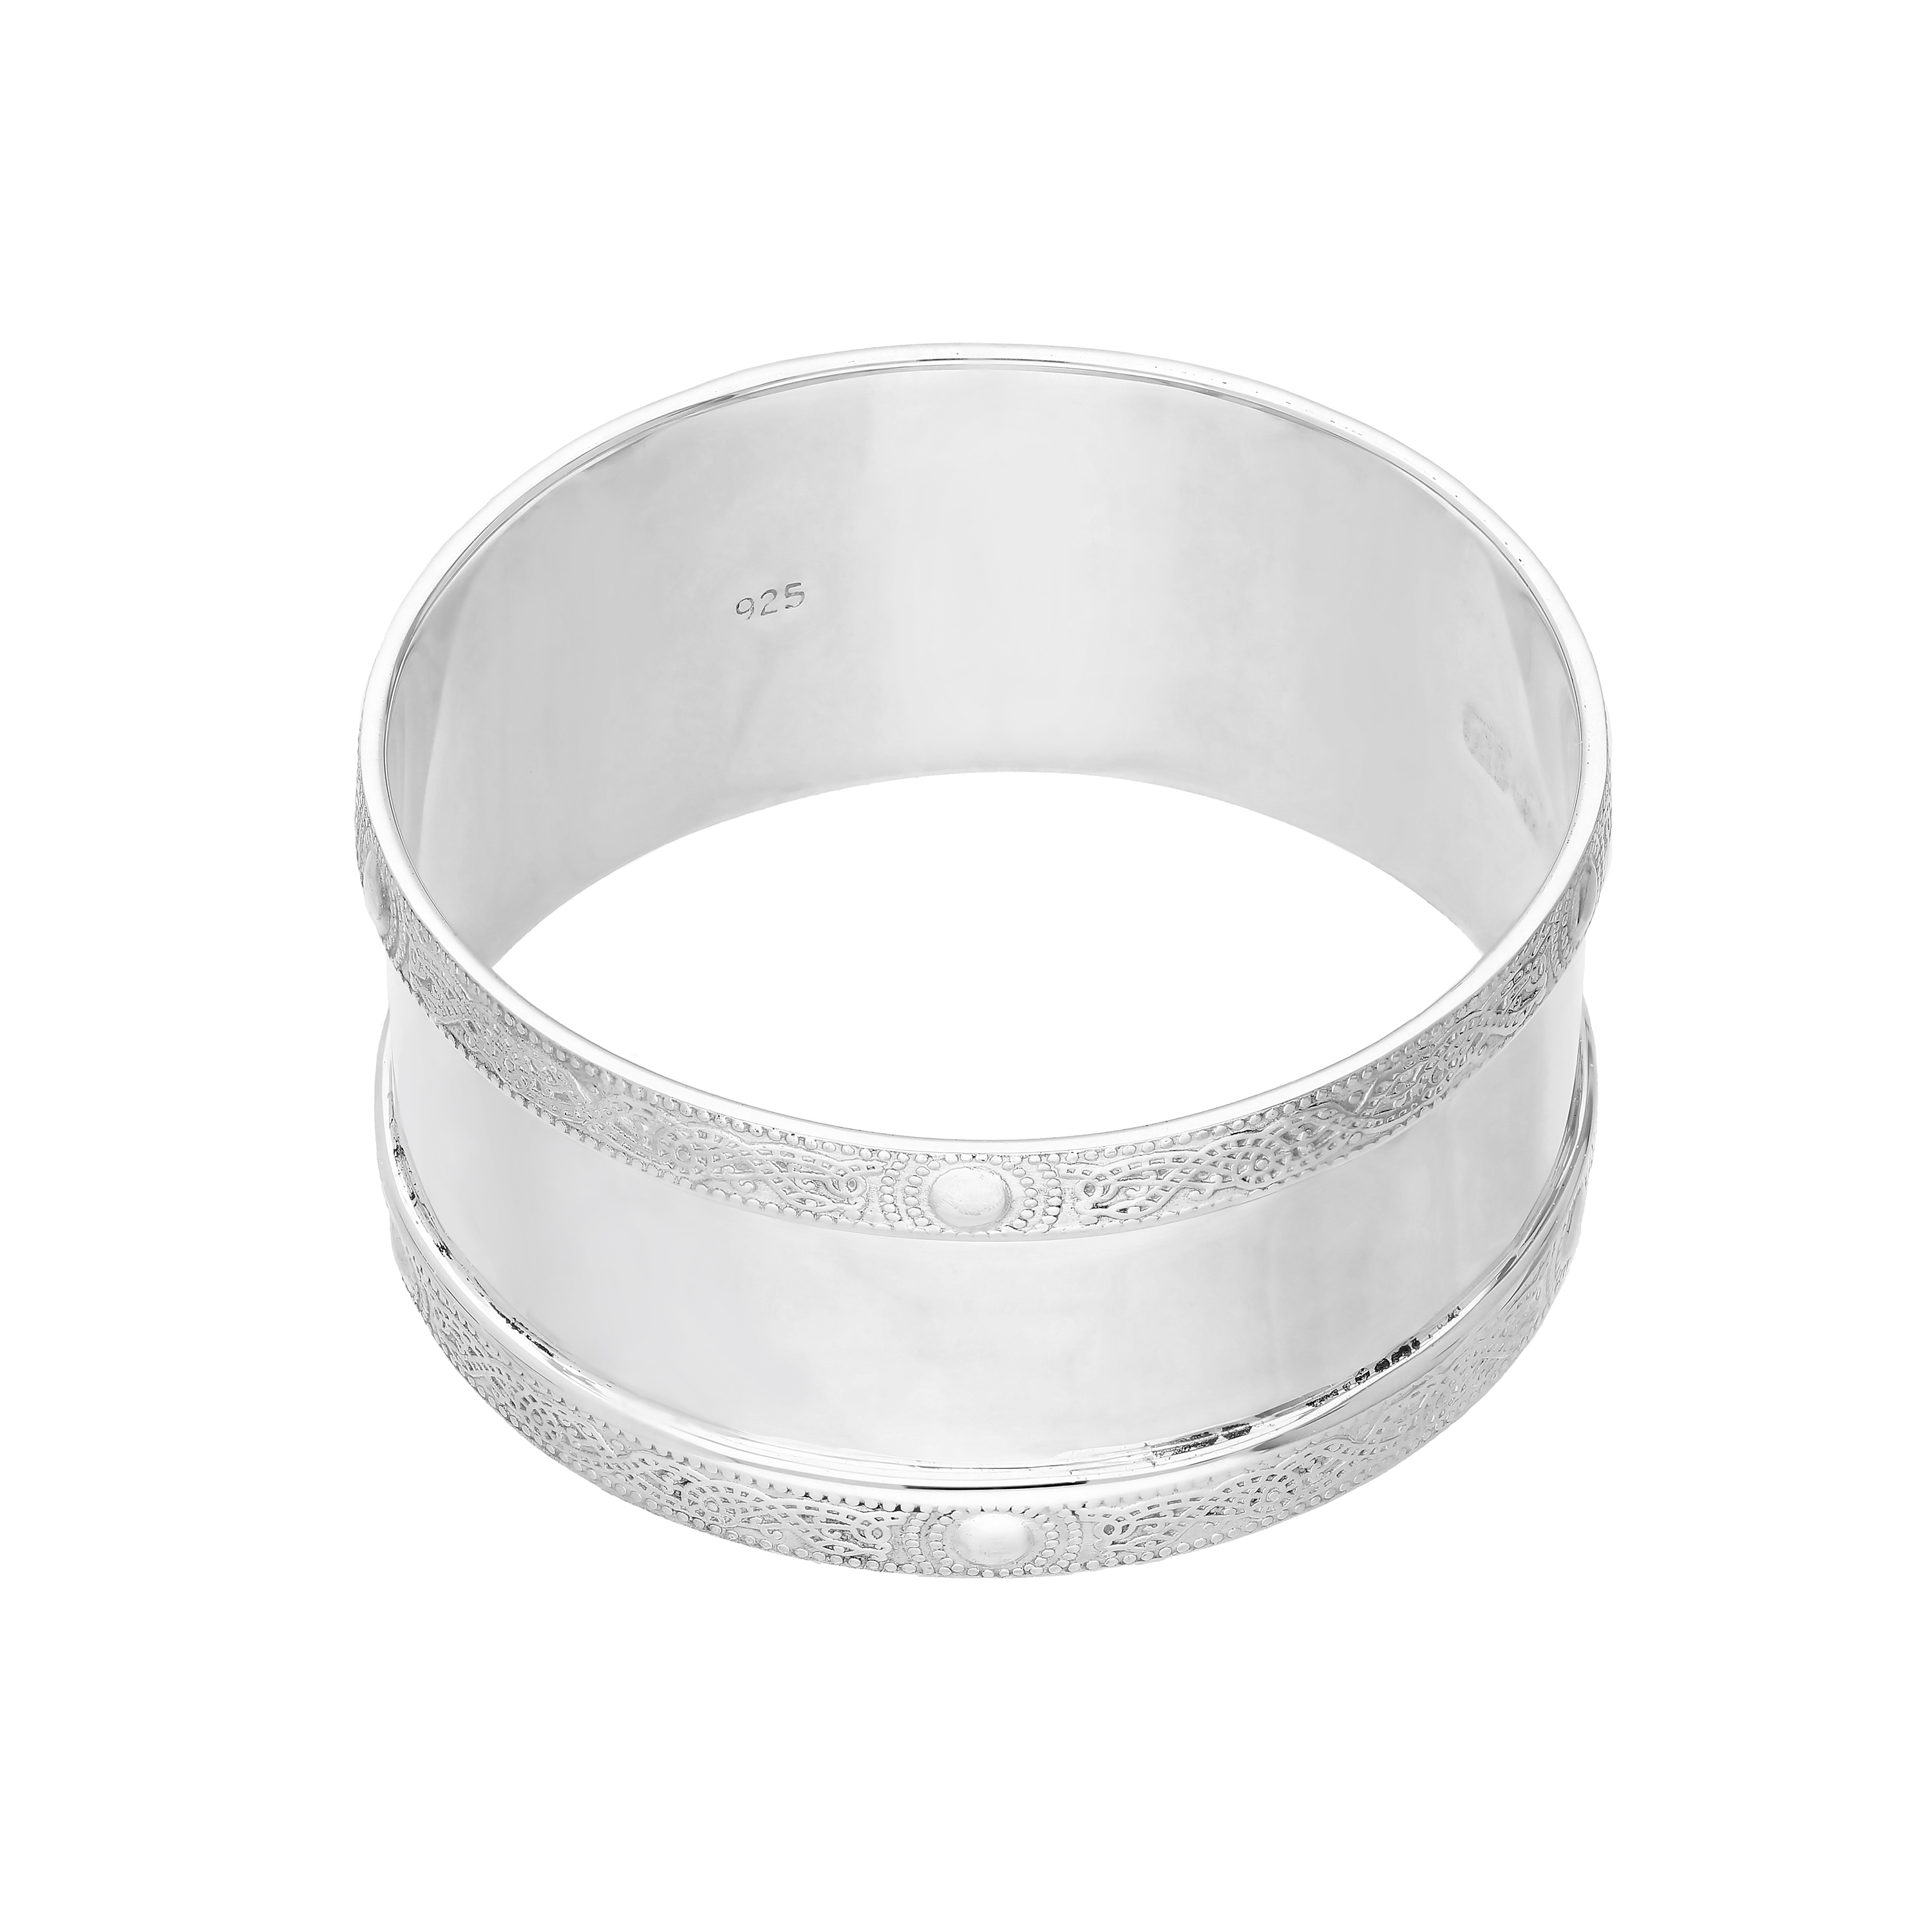 An image of Sterling Silver Celtic Napkin Ring